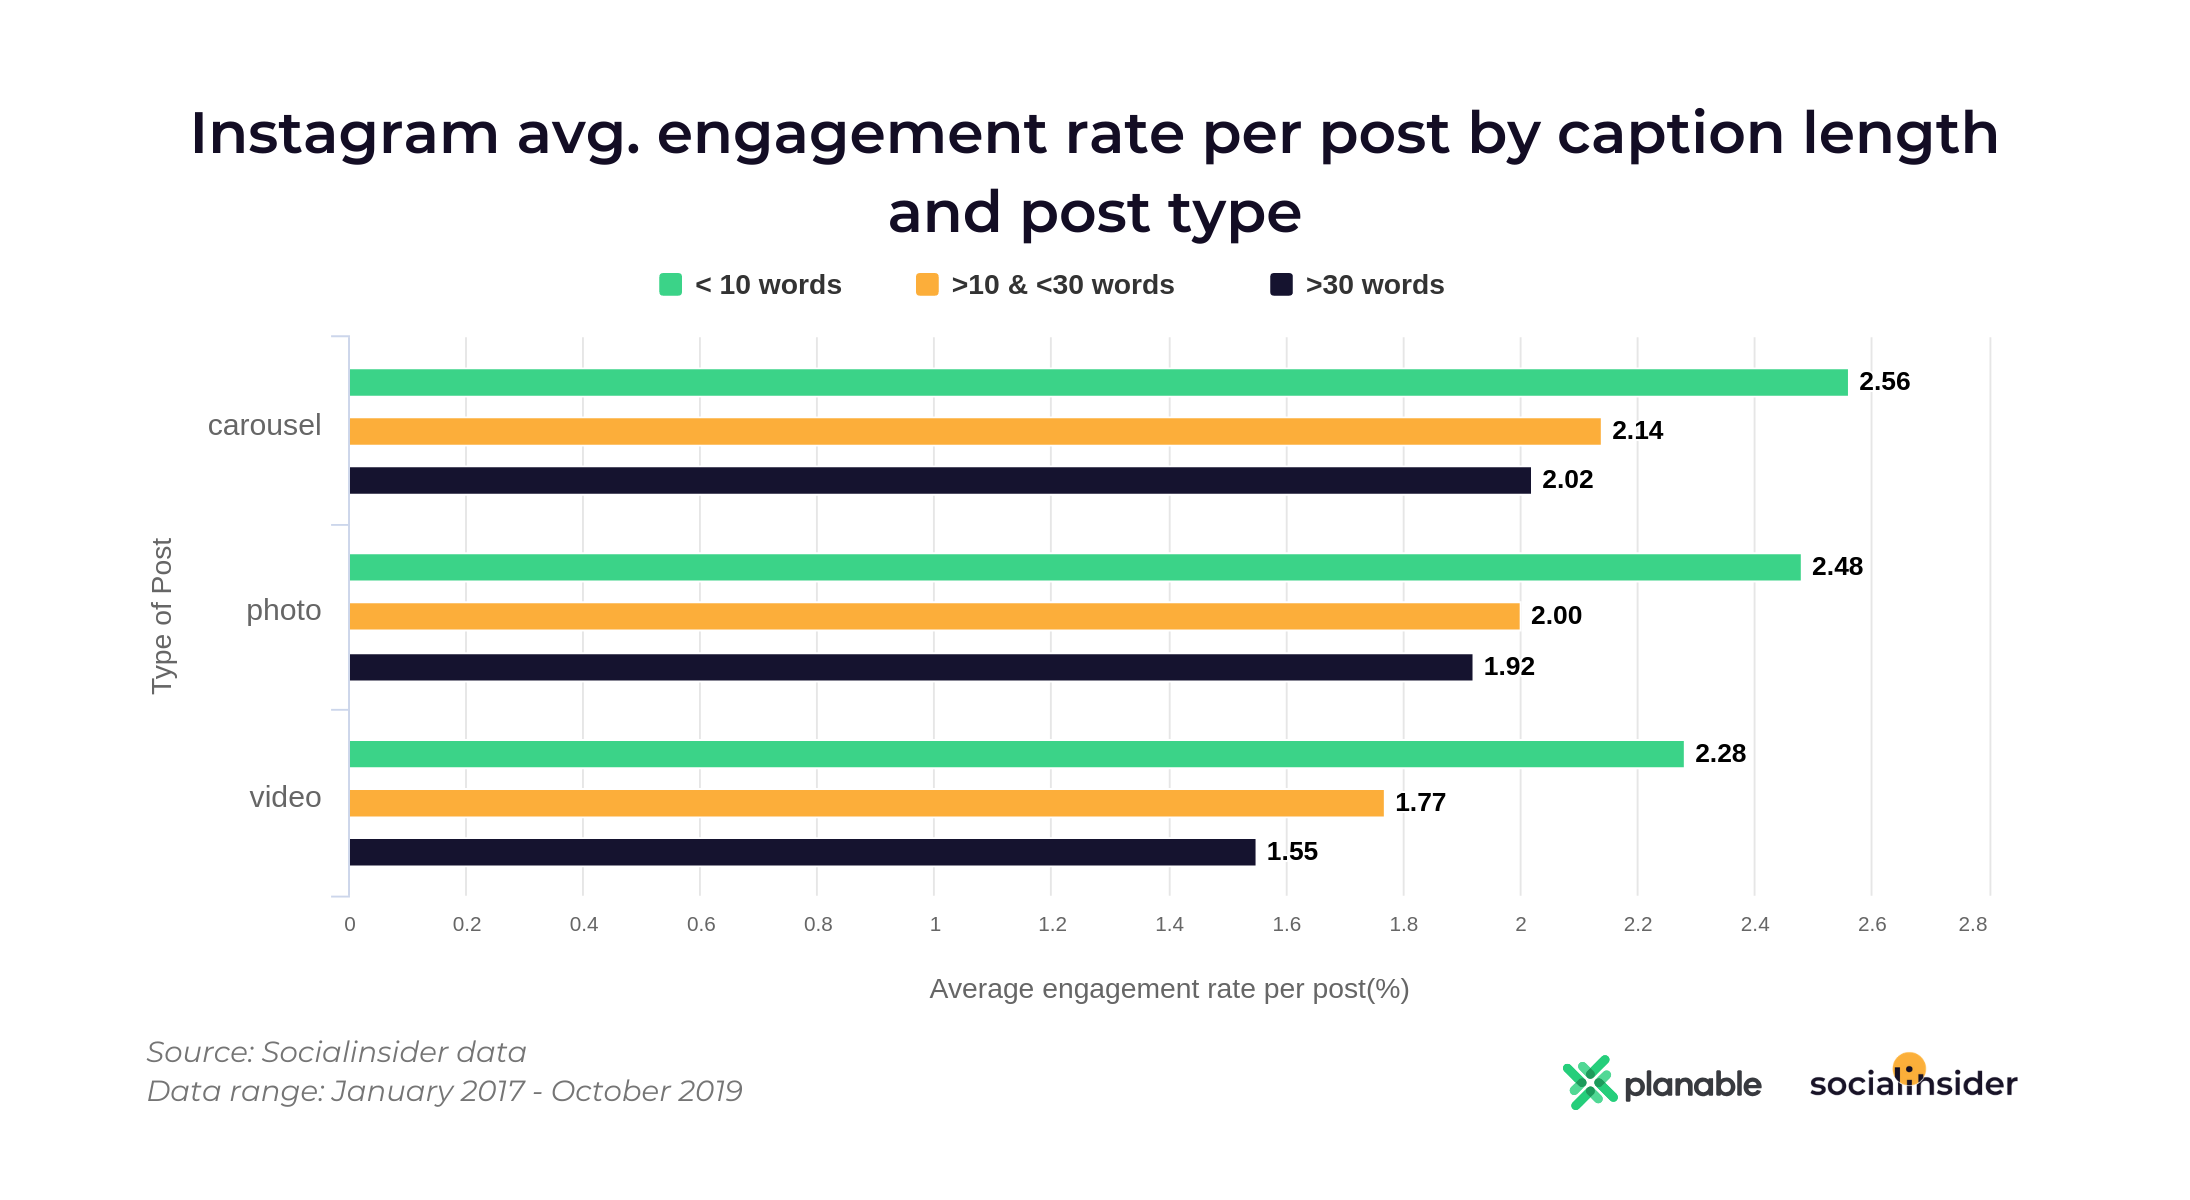 Instagram post engagement by length and type